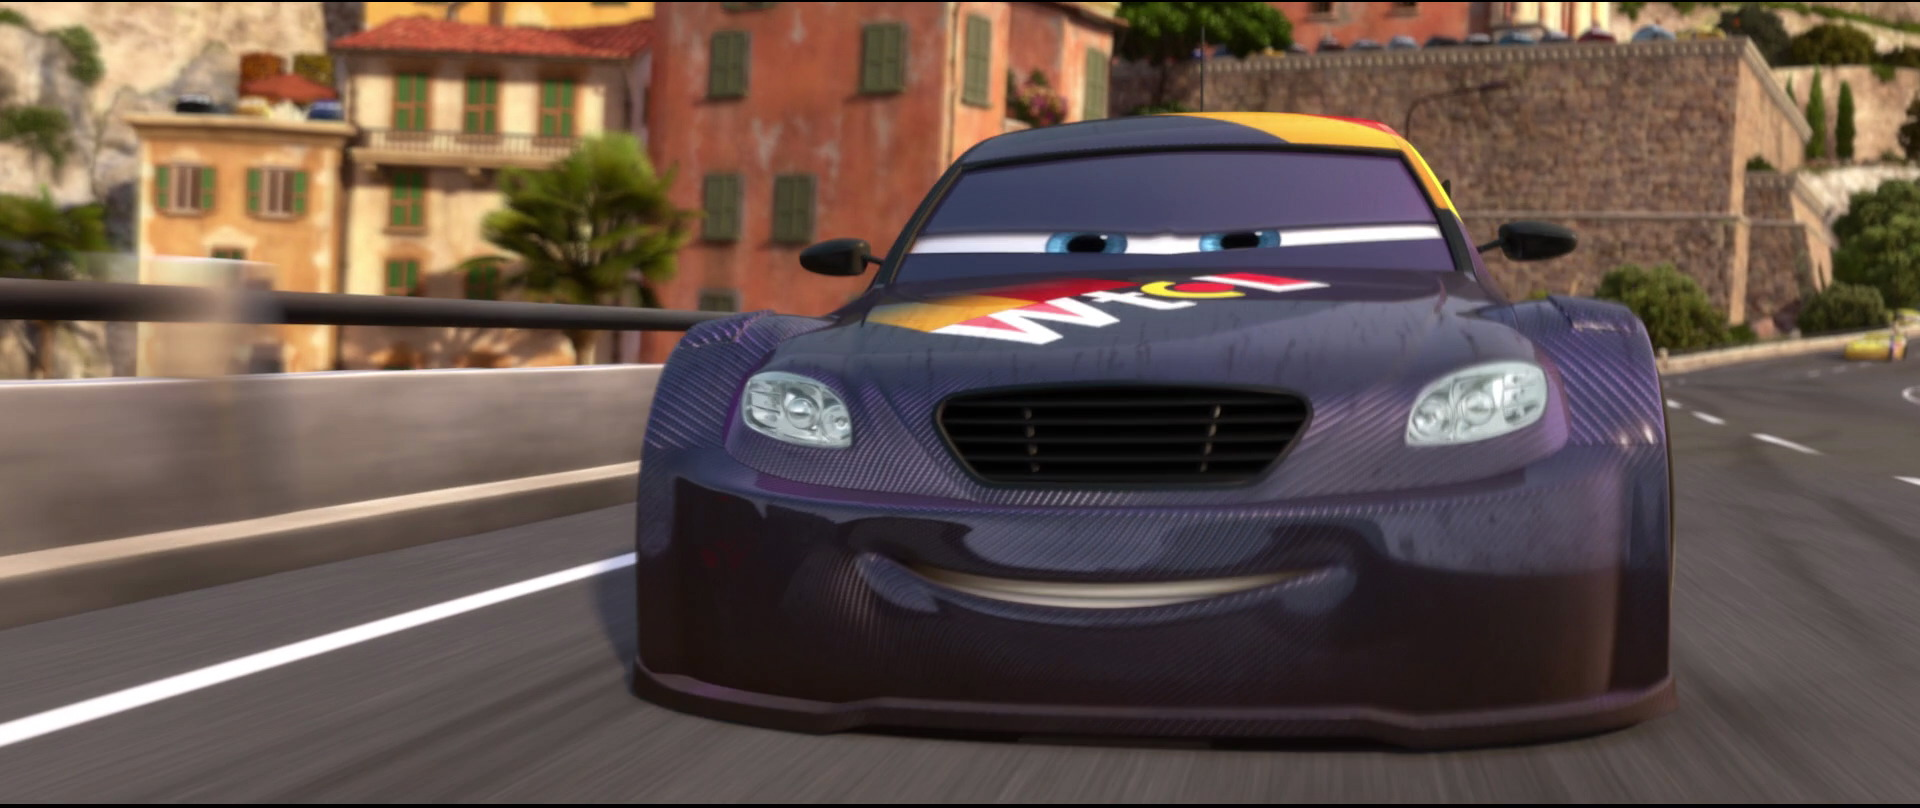 Disney CARS 2-World Grand Prix - Bed and Breakfast ...